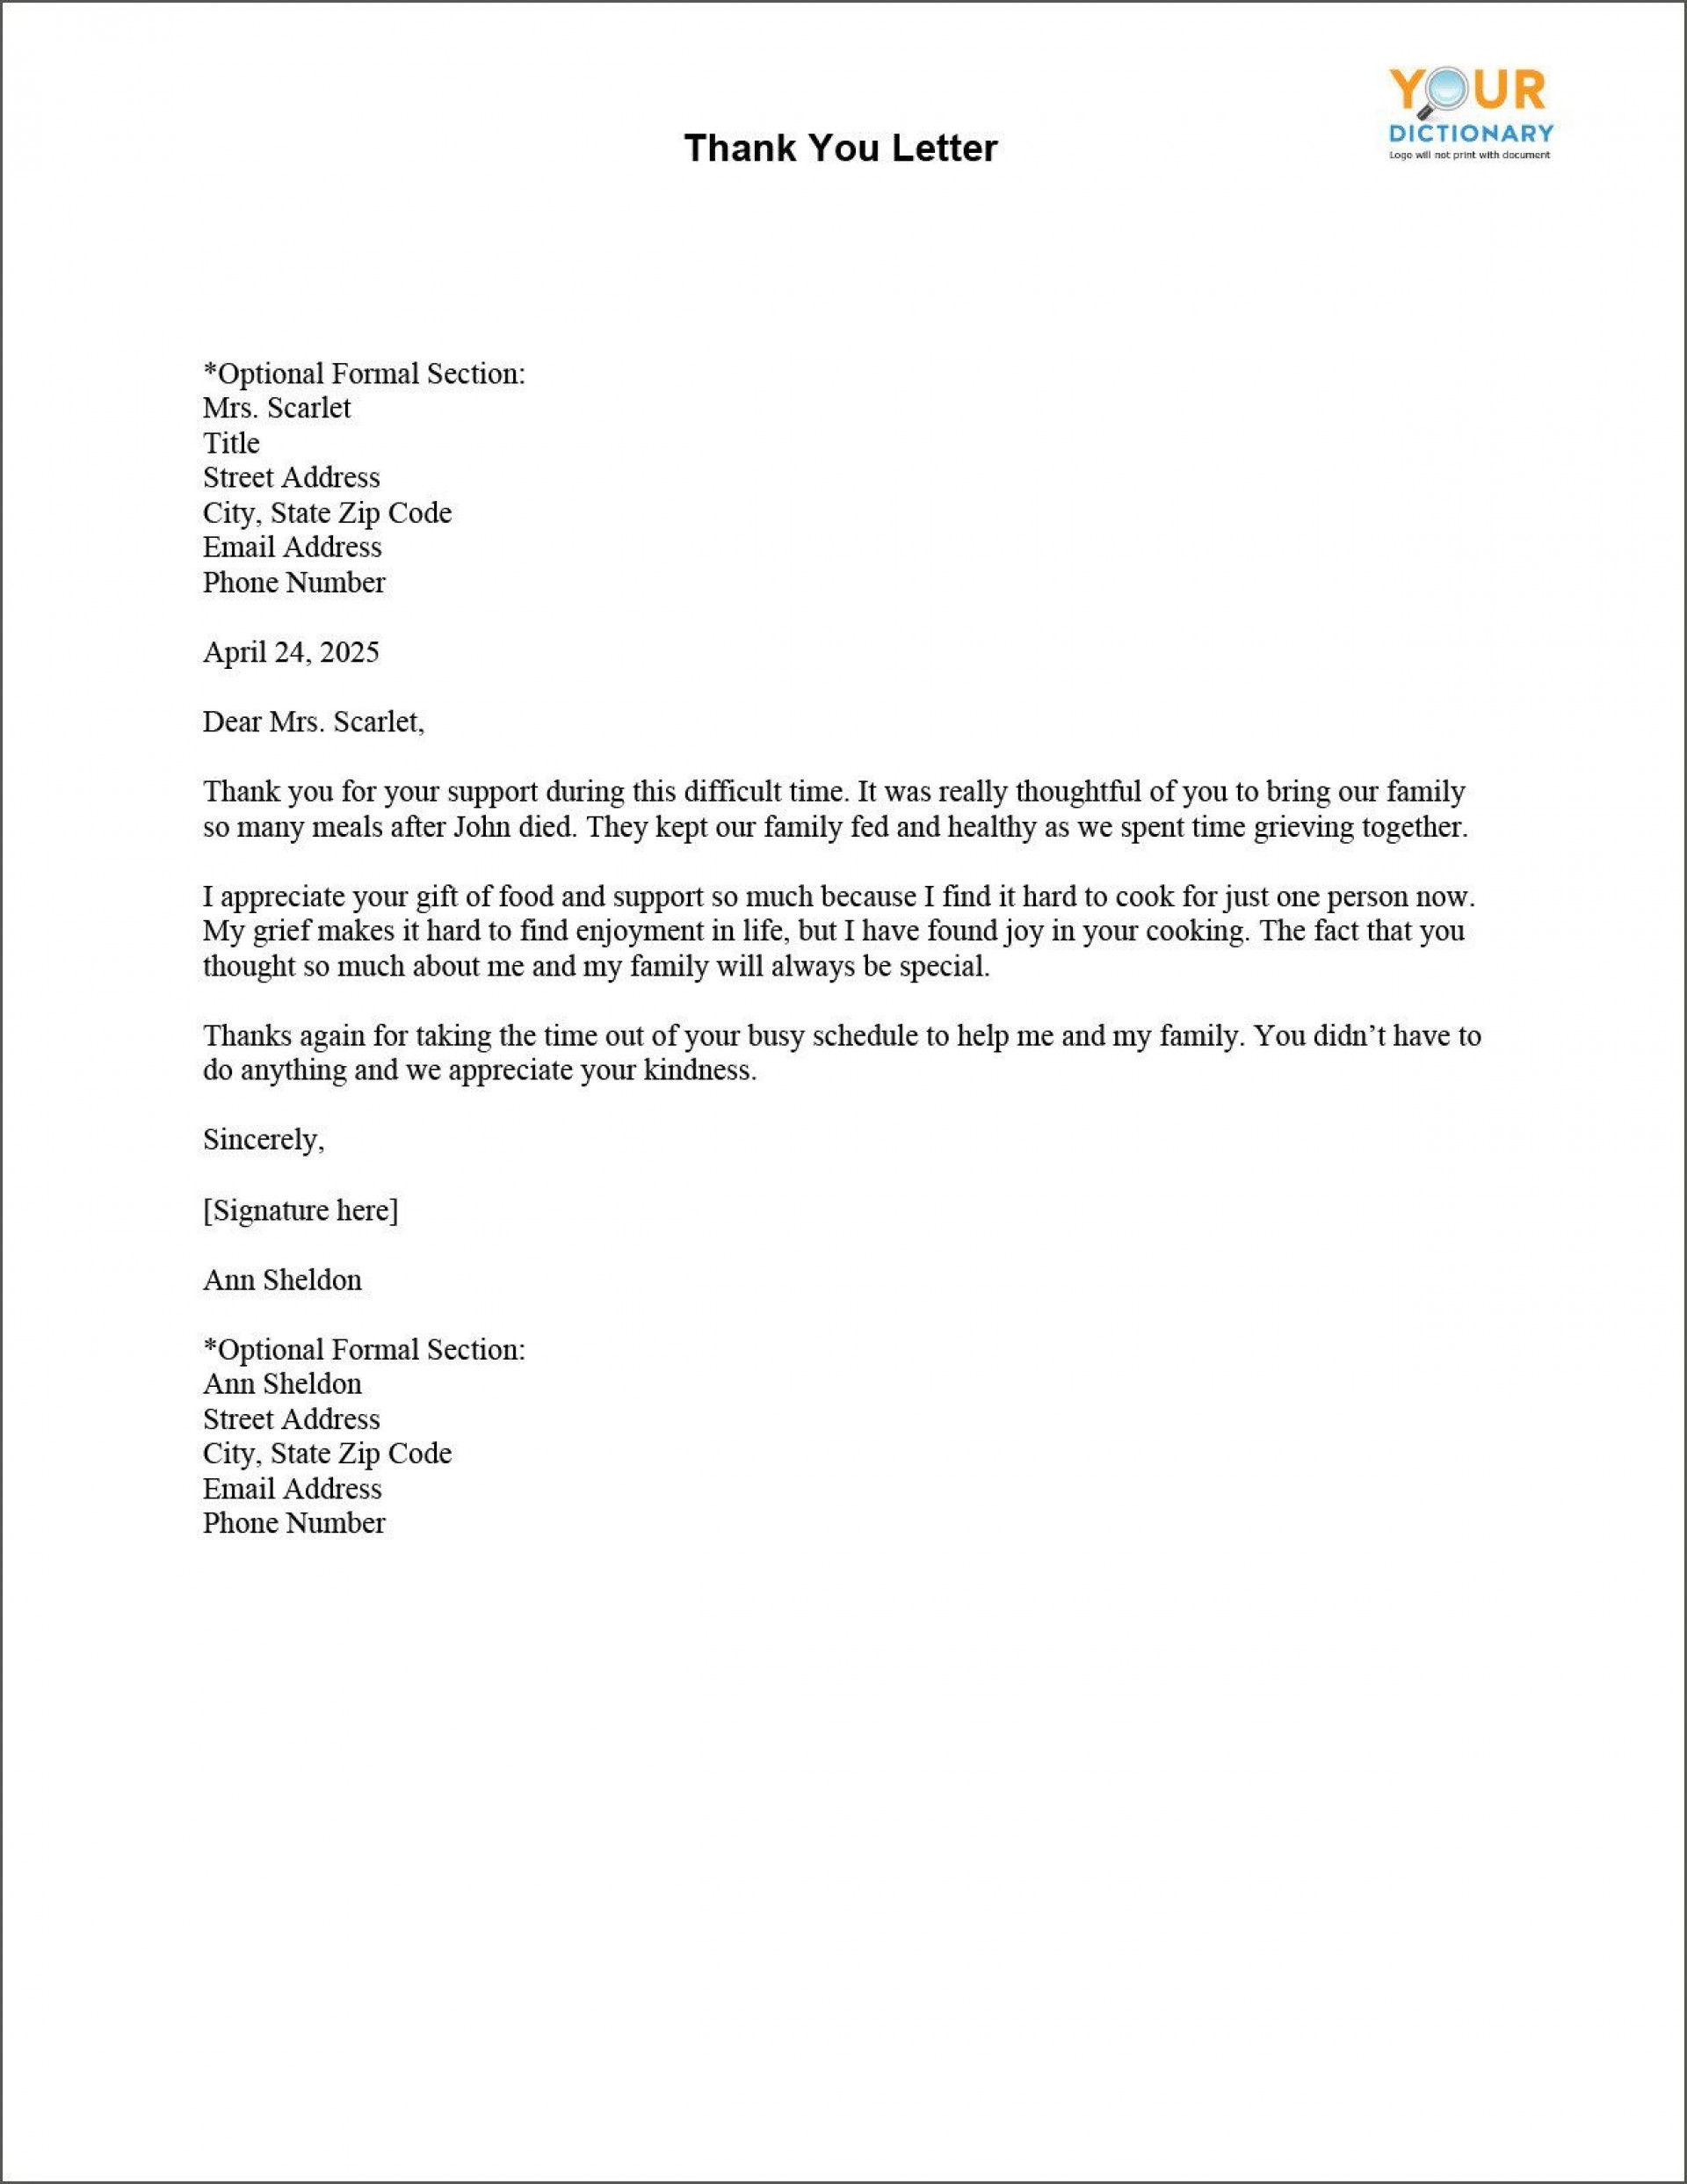 003 Shocking Thank You Letter Template Picture  Templates Pdf Sample For Gift Received Book Donation1920